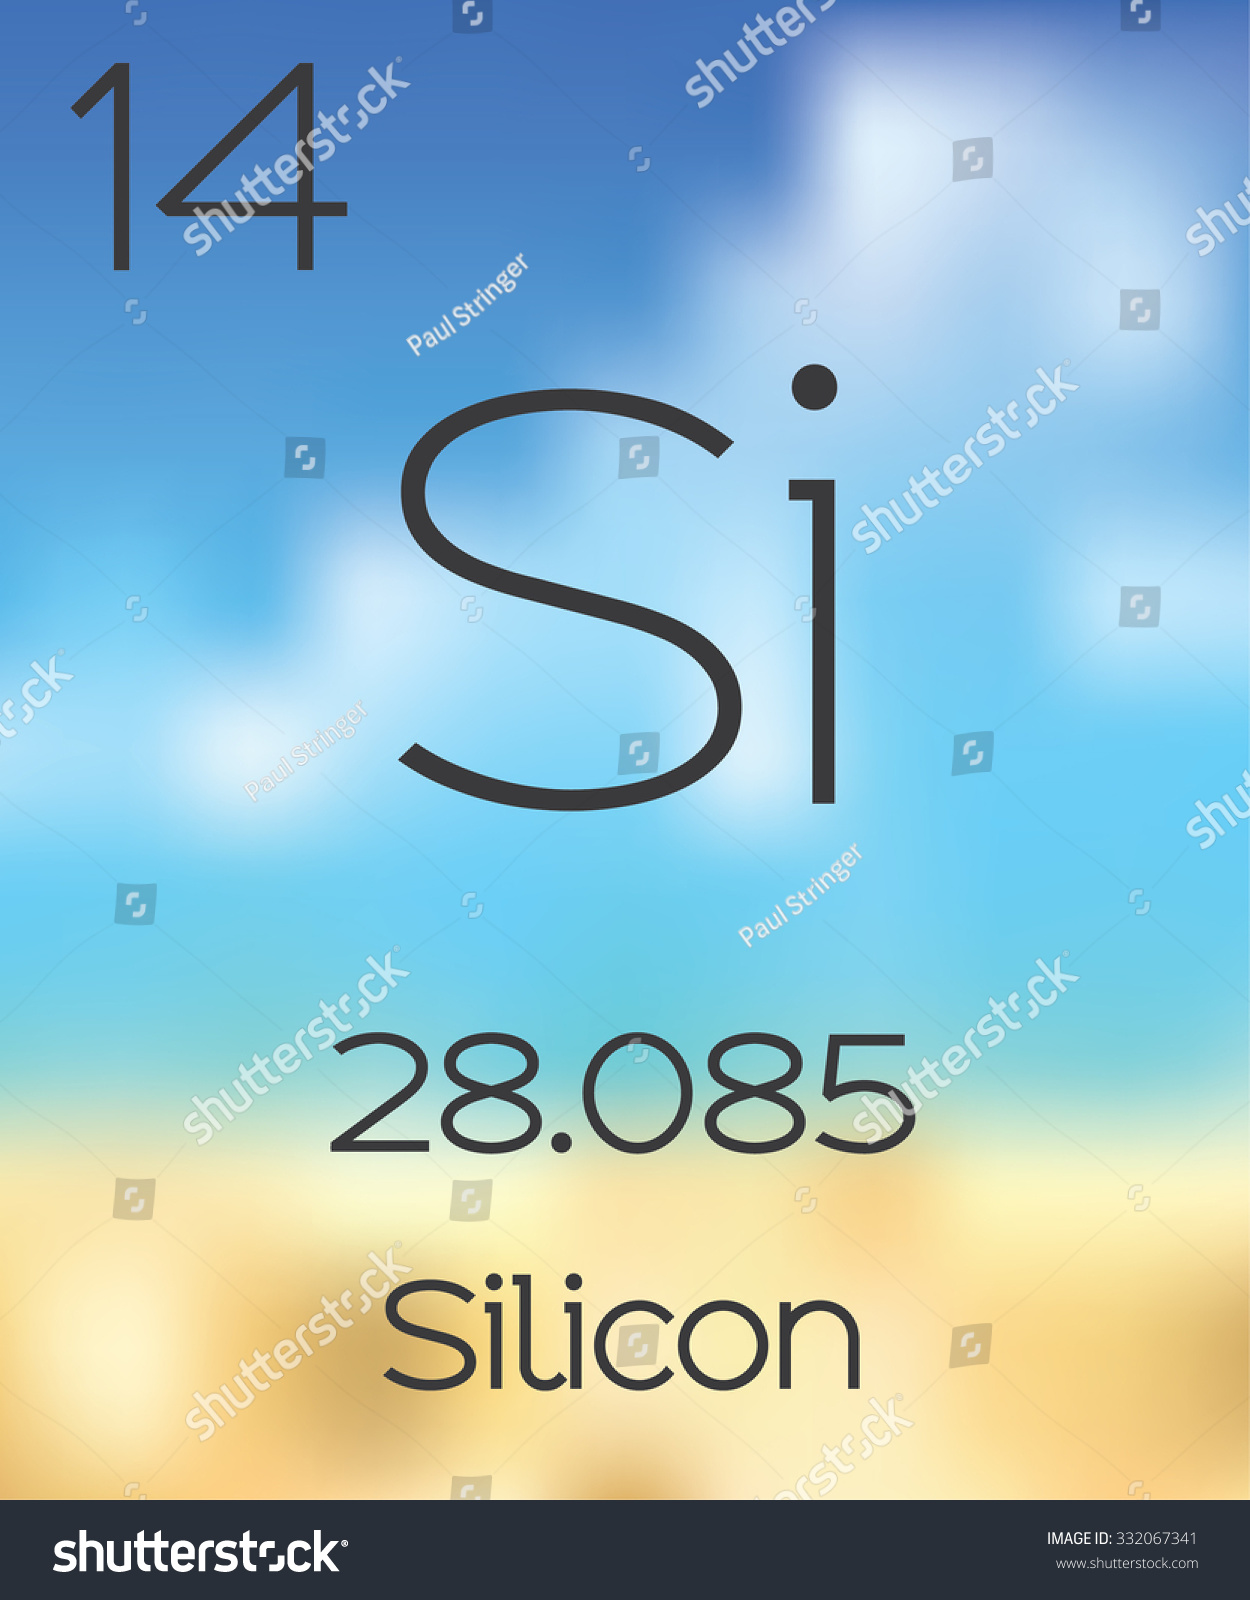 Periodic table elements silicon stock illustration 332067341 the periodic table of the elements silicon biocorpaavc Gallery